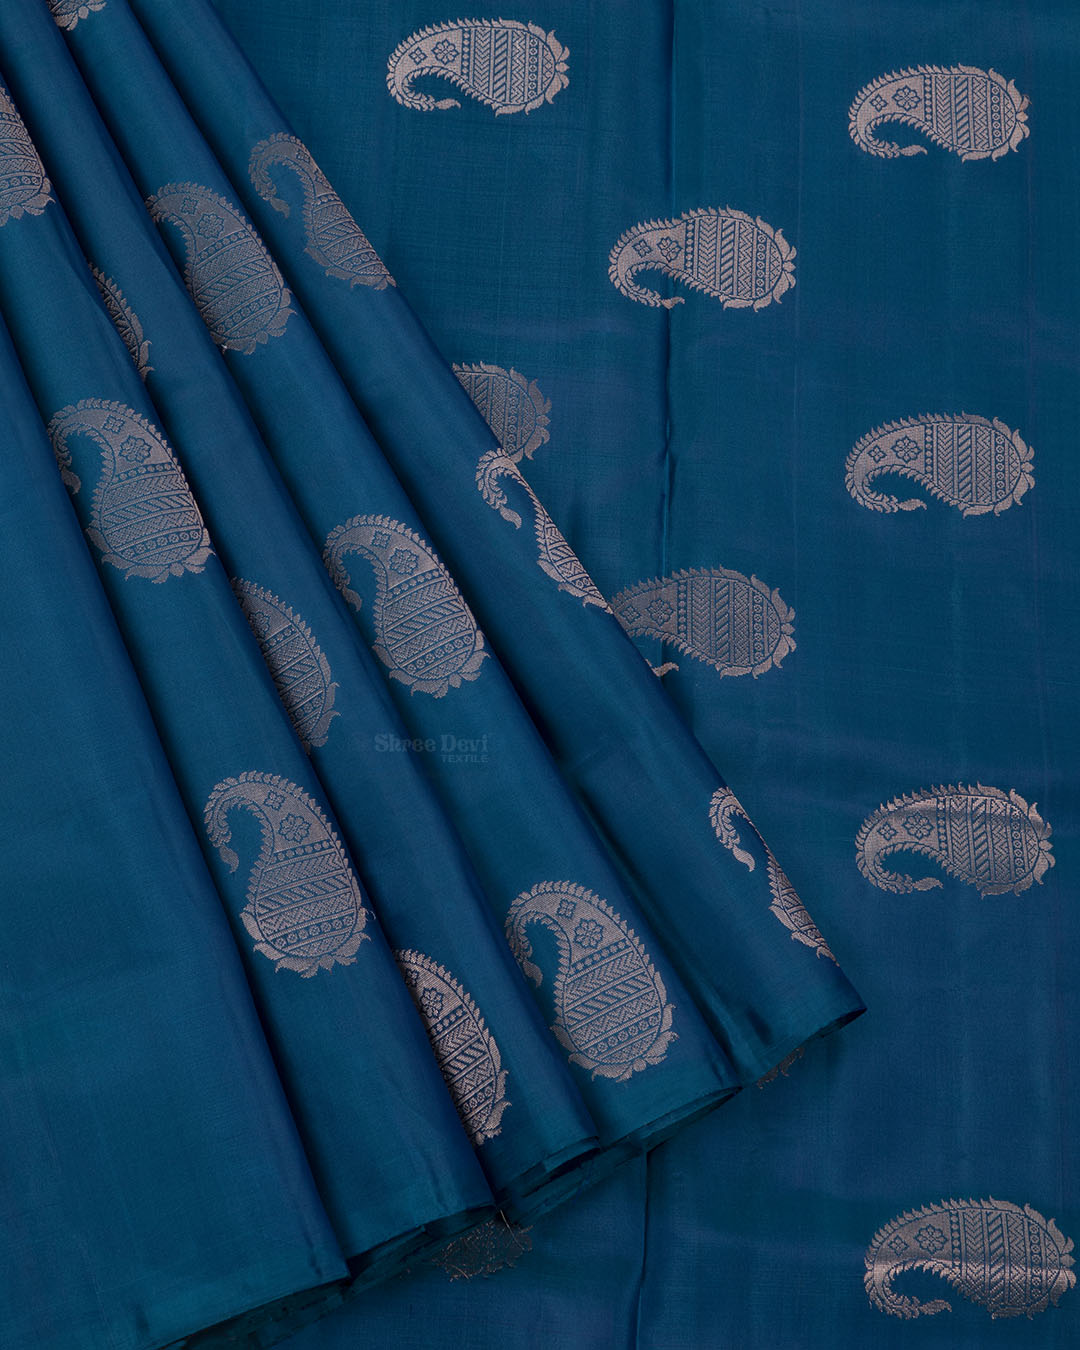 Peacock Blue Elite Motif Kancheevarams Silk Saree with Mango Zari Motifs